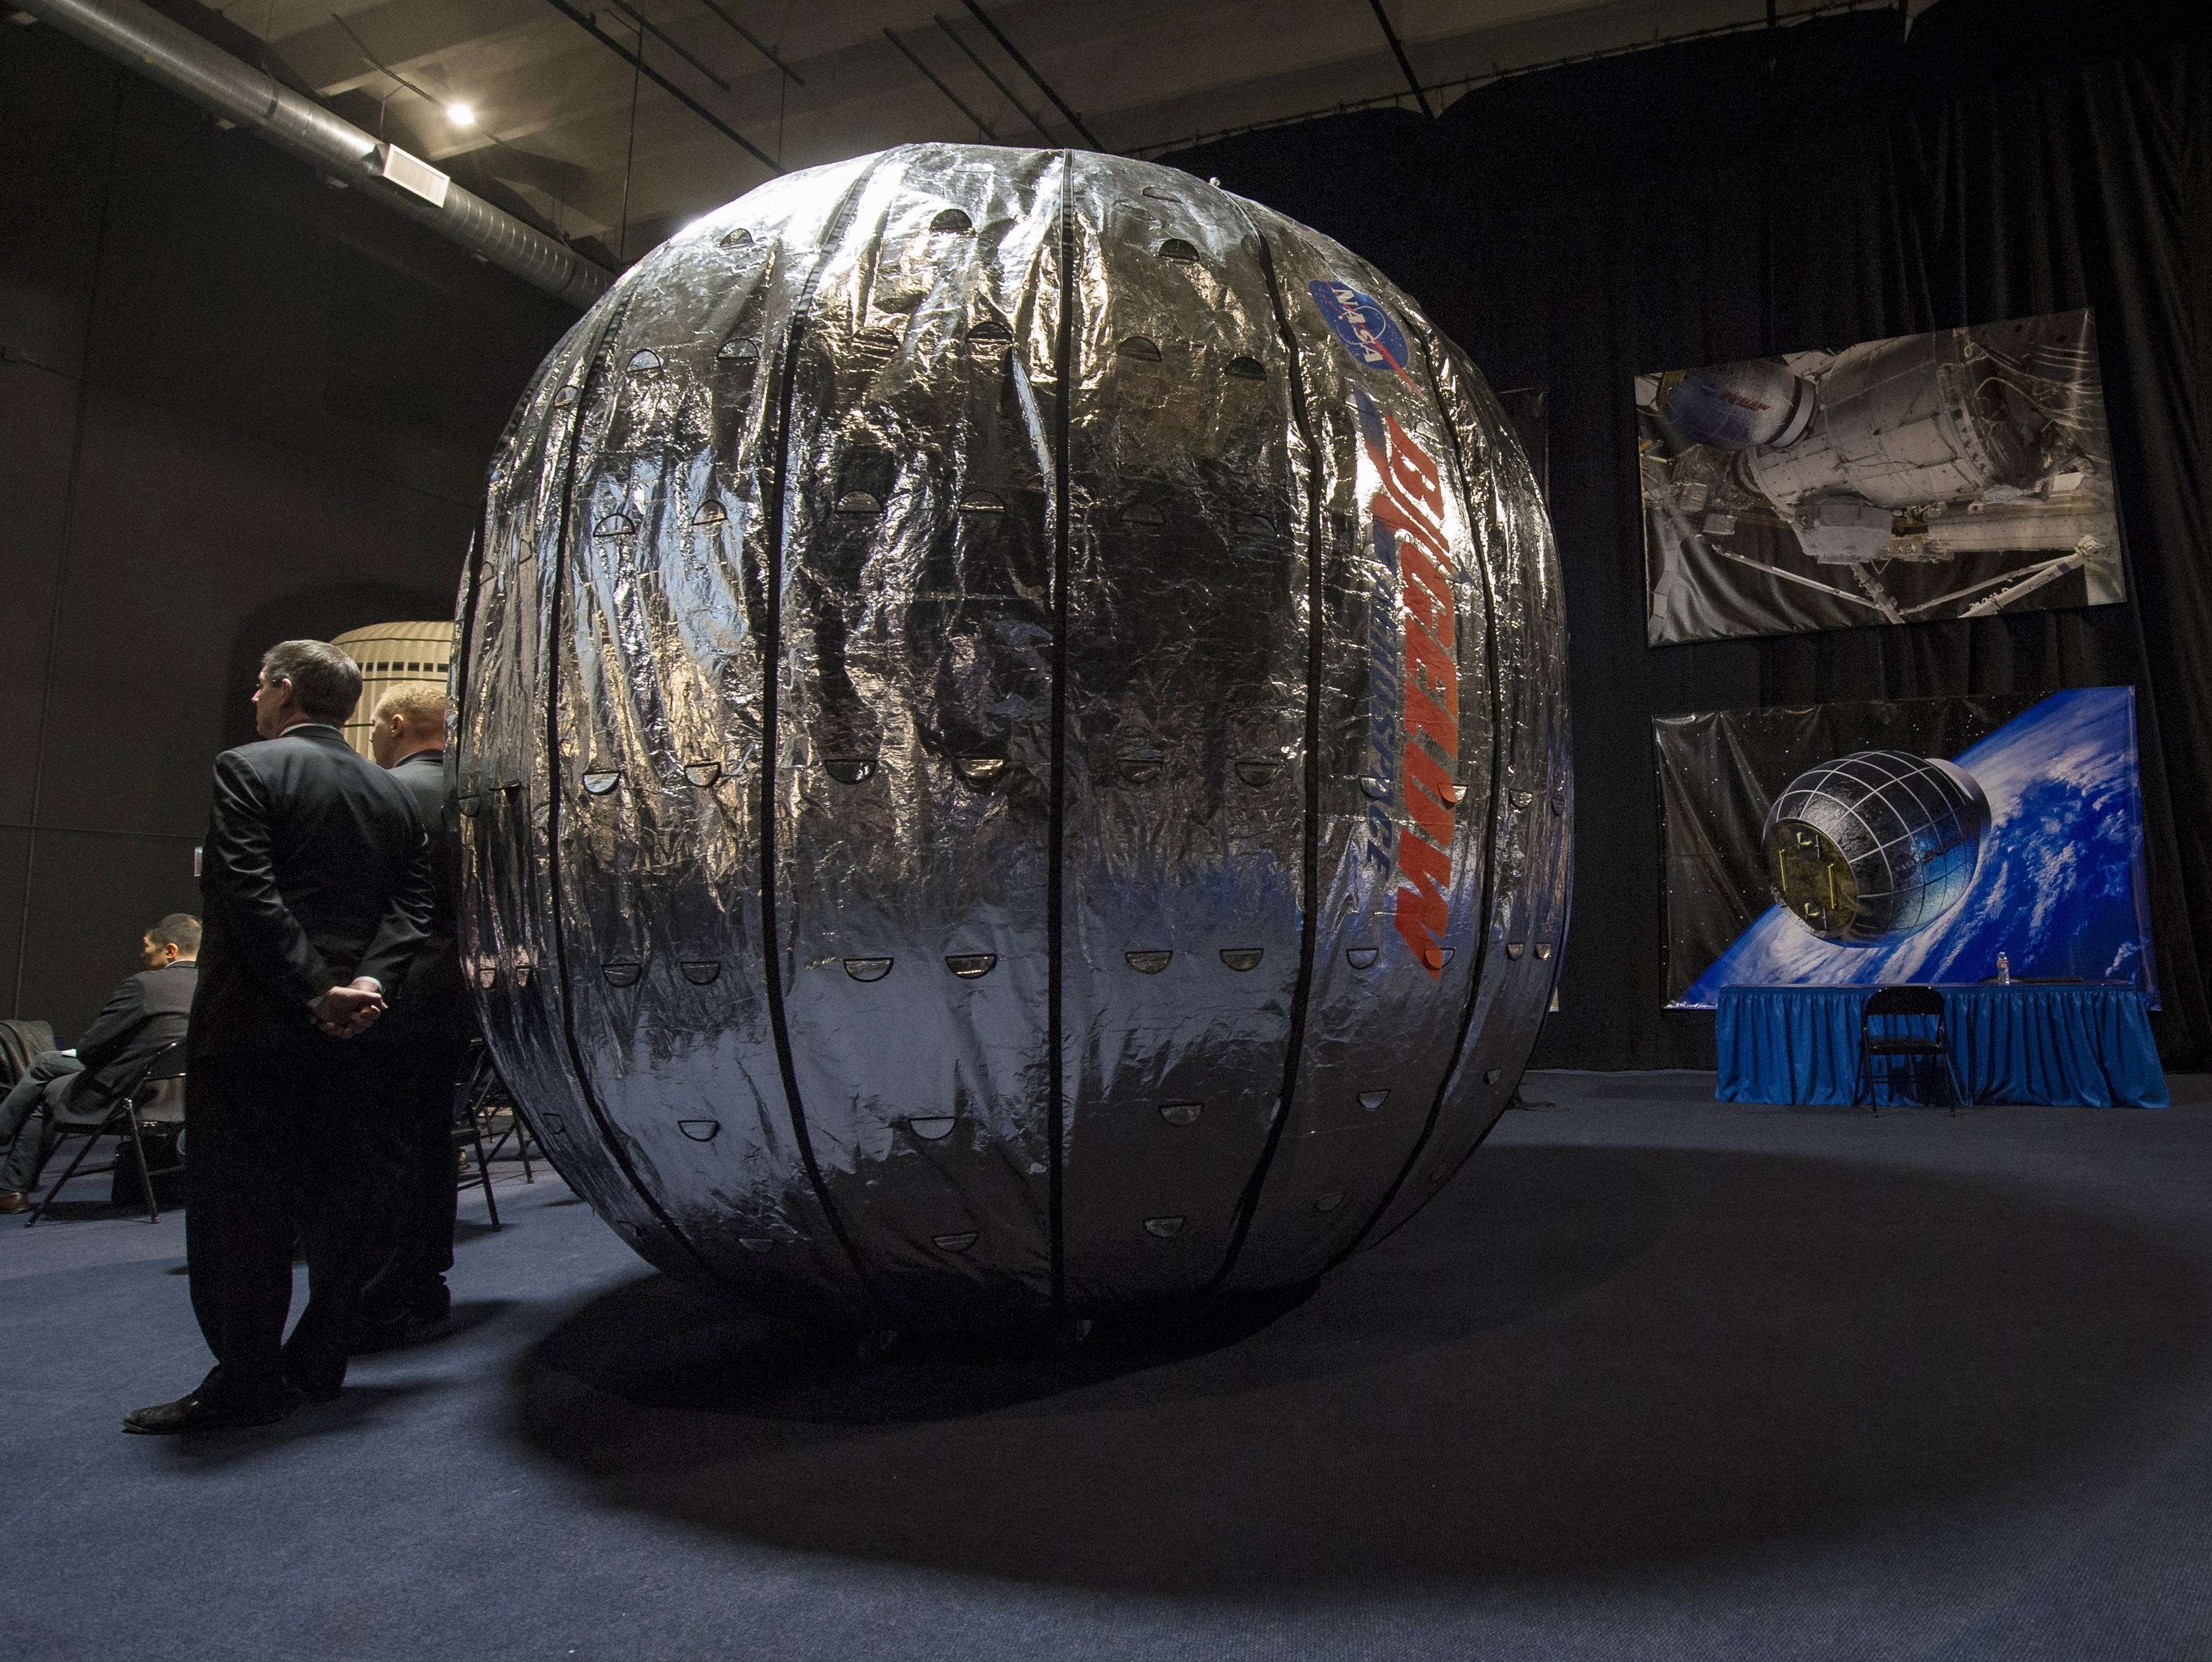 beam me up u2014 nasa experiments with inflatable modules pbs newshour